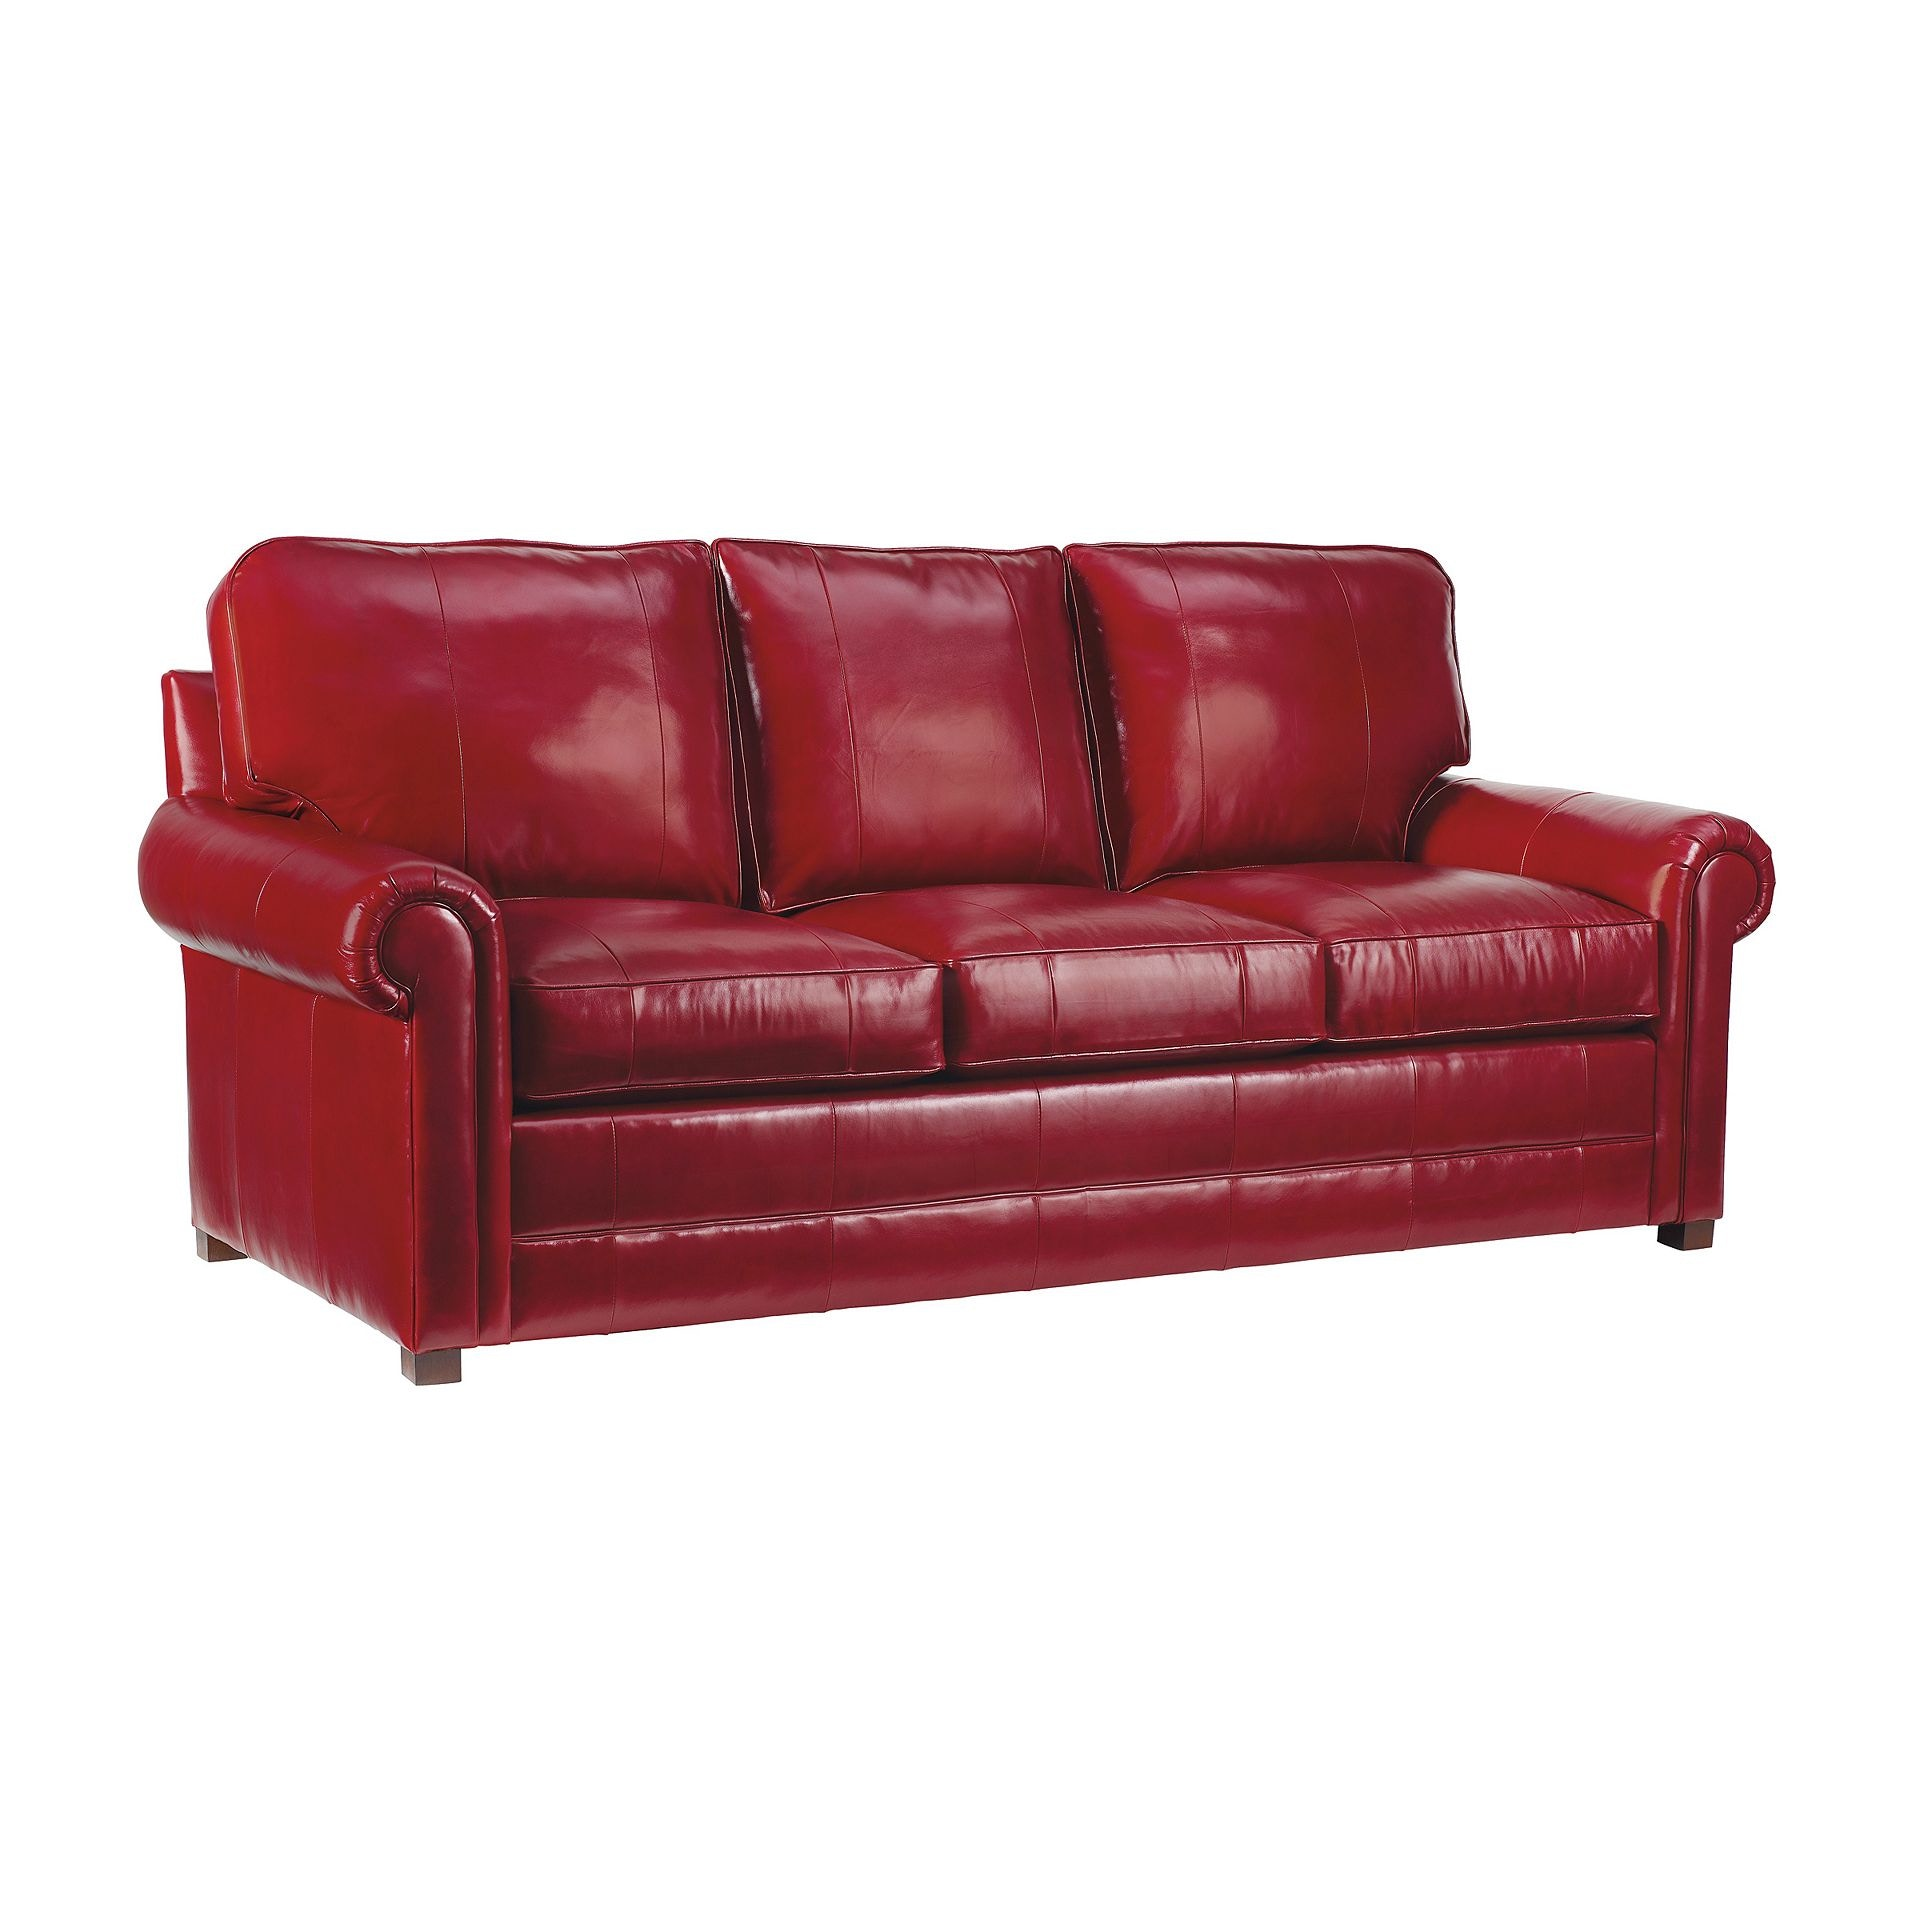 drexel heritage sofa prices what is the average cost of reupholstering a henredon furniture l4700 c 1